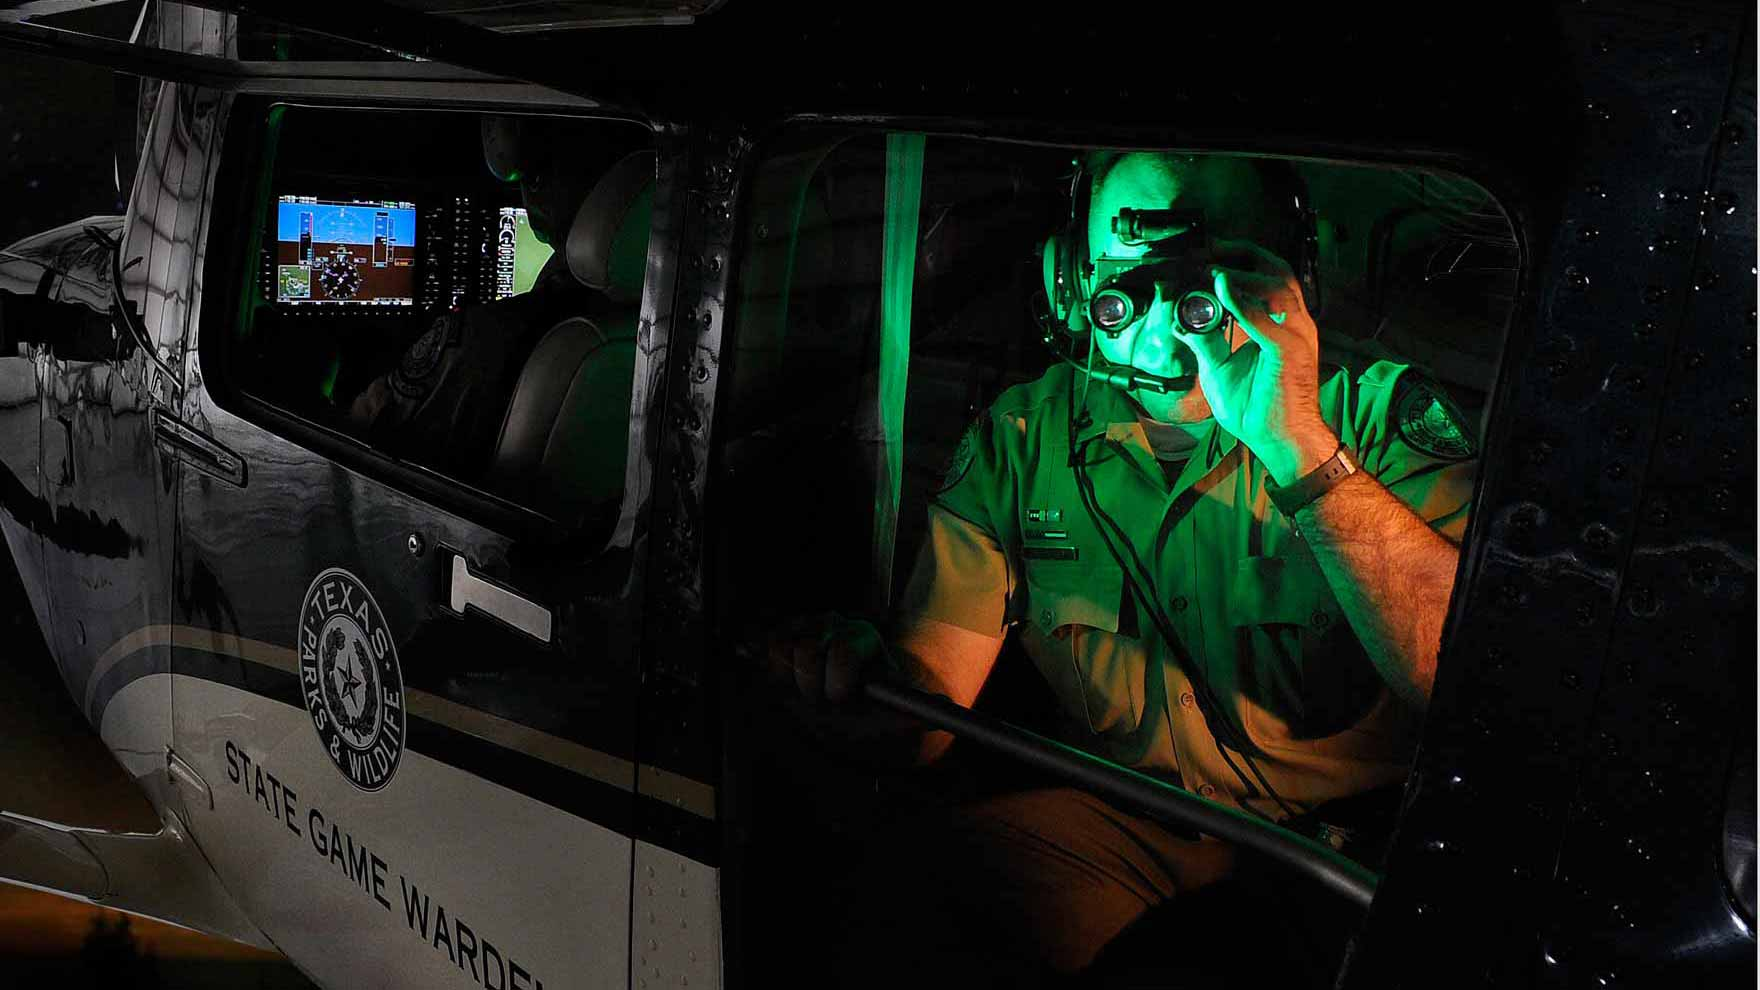 Game Warden using night vision goggles from fixed wing aircraft at night